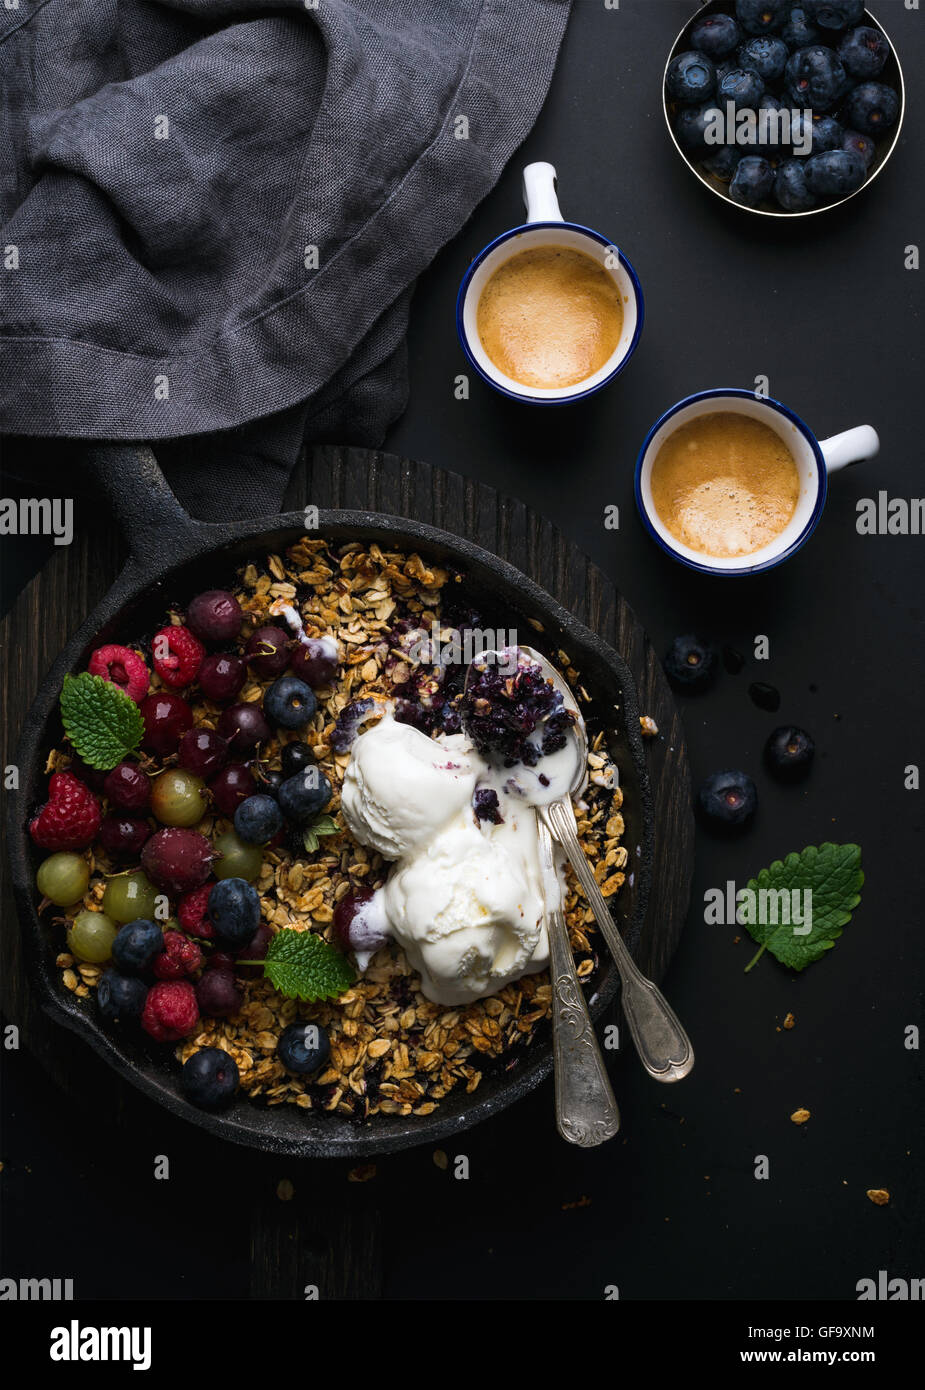 Healthy breakfast. Oat granola crumble with fresh berries, seeds and ice-cream in iron skillet pan on dark wooden - Stock Image